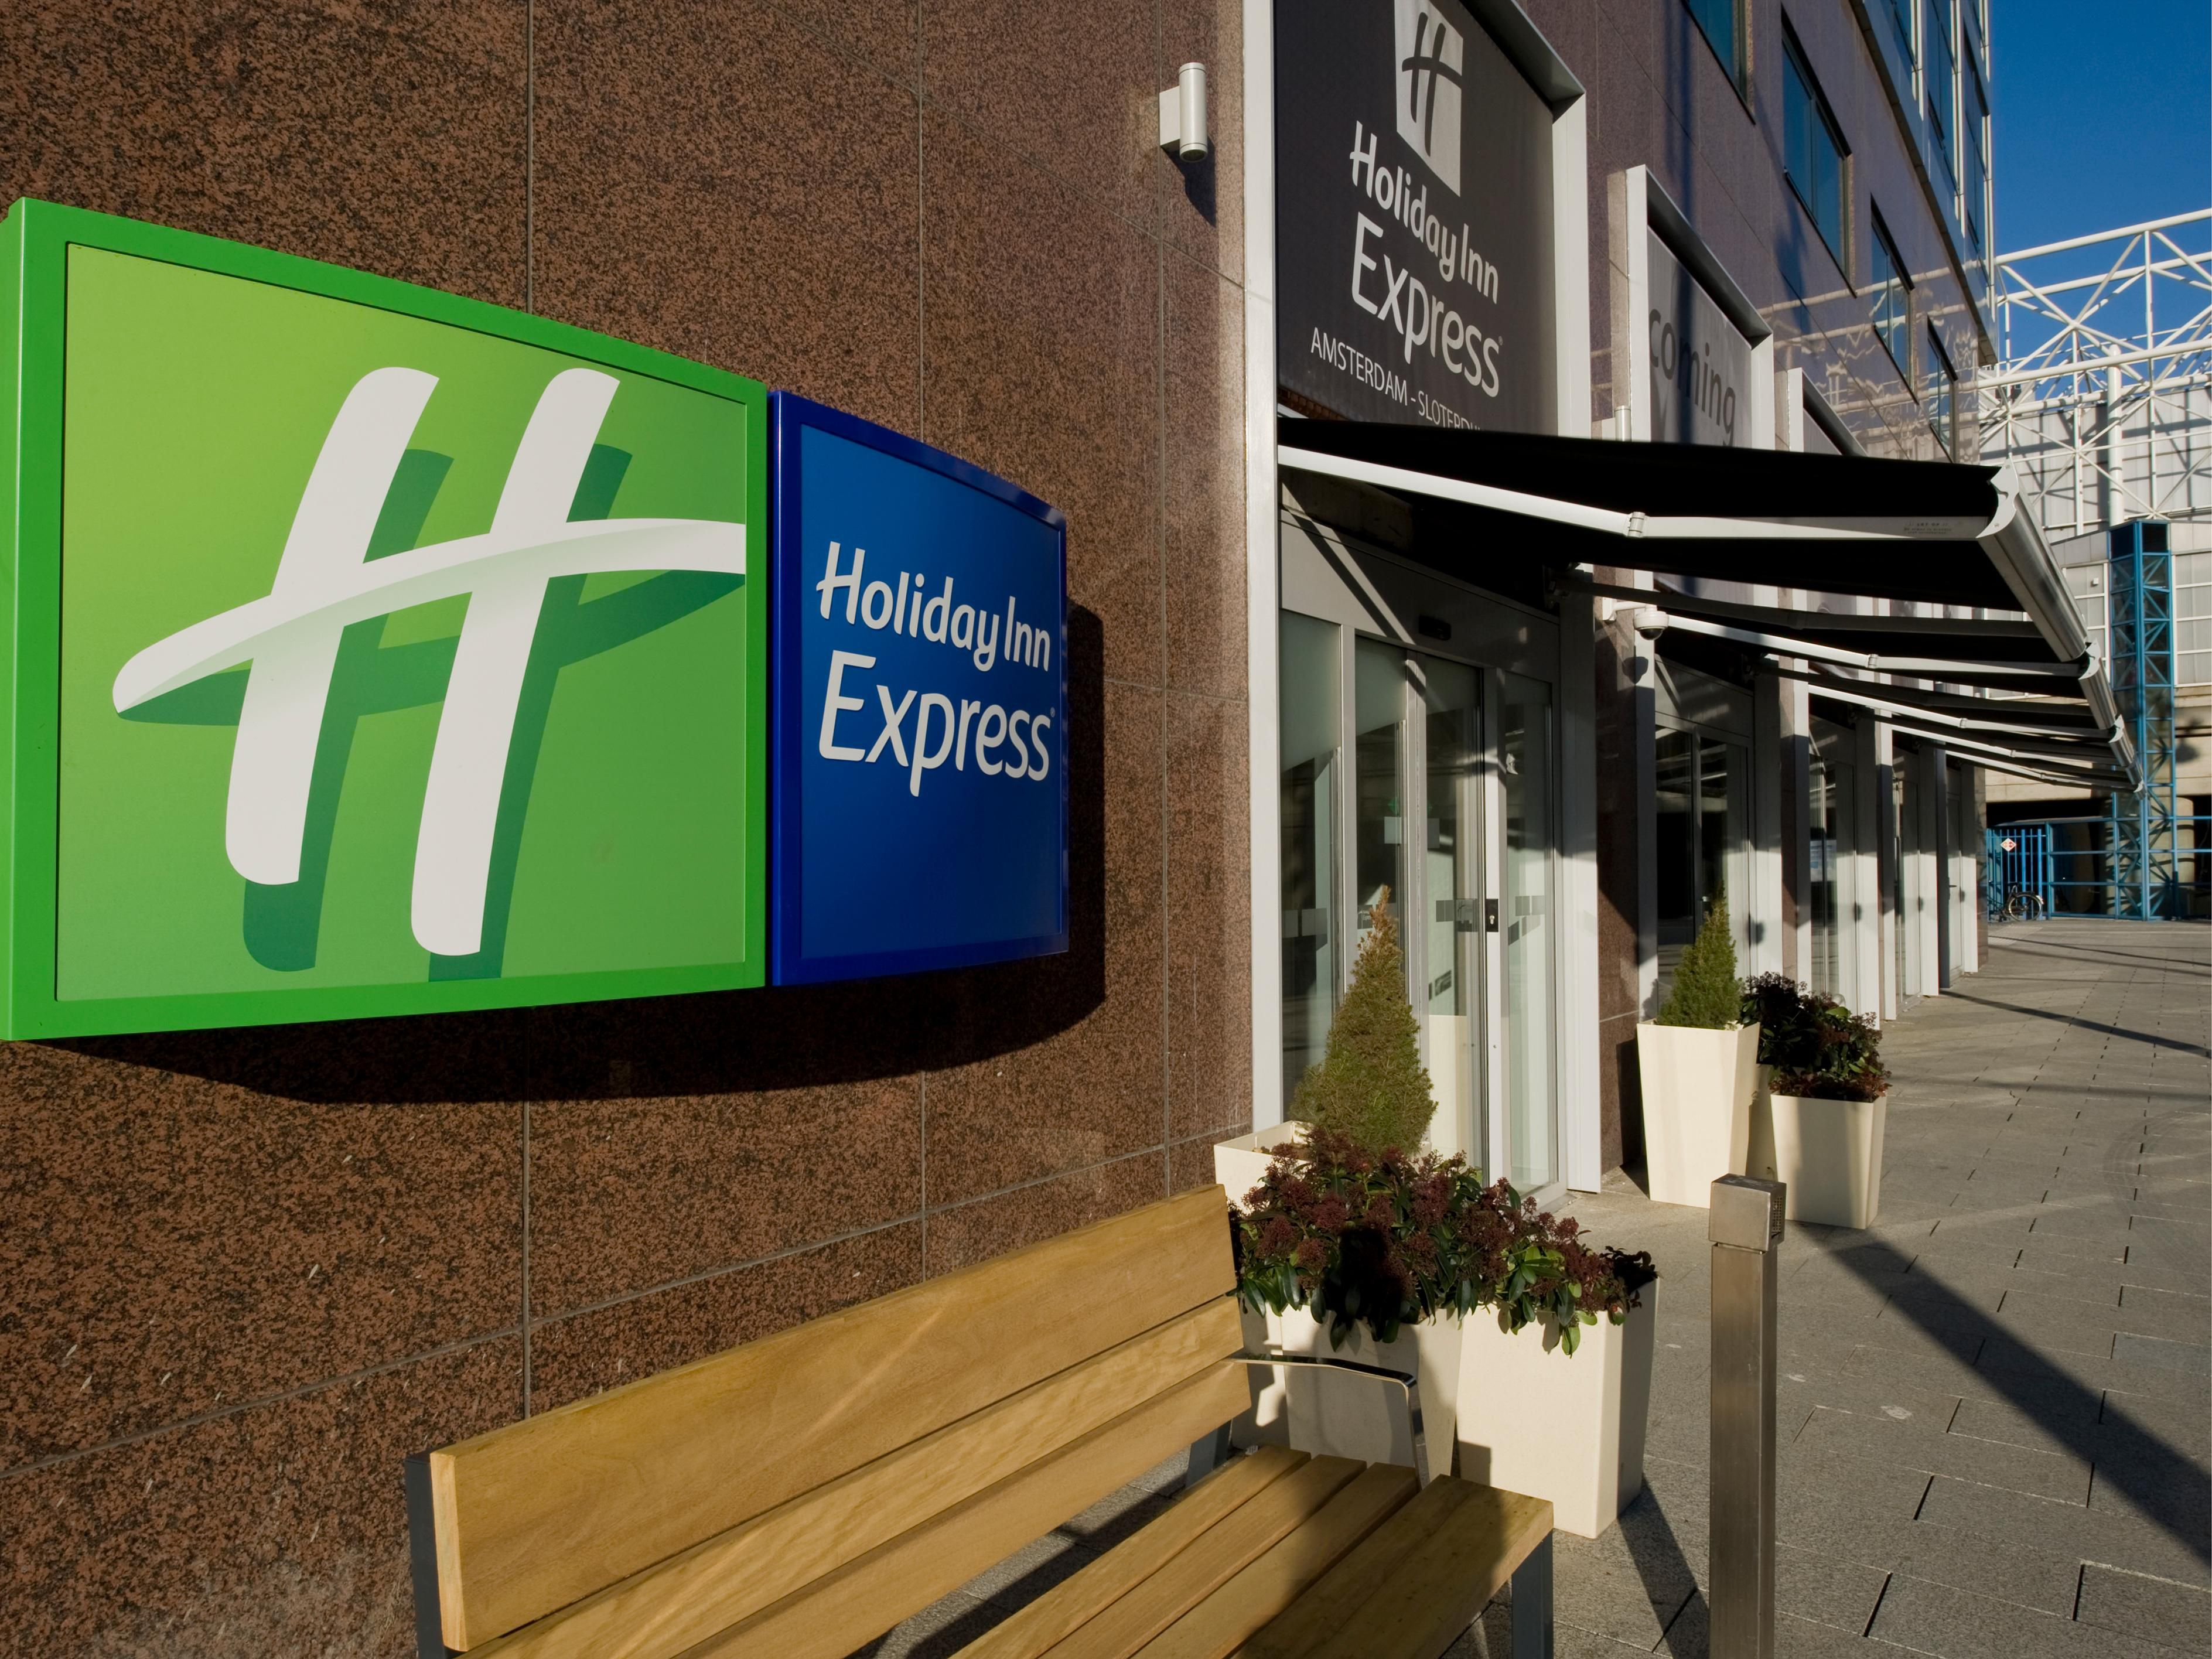 Welcome at Holiday Inn Express Amsterdam - Sloterdijk Station